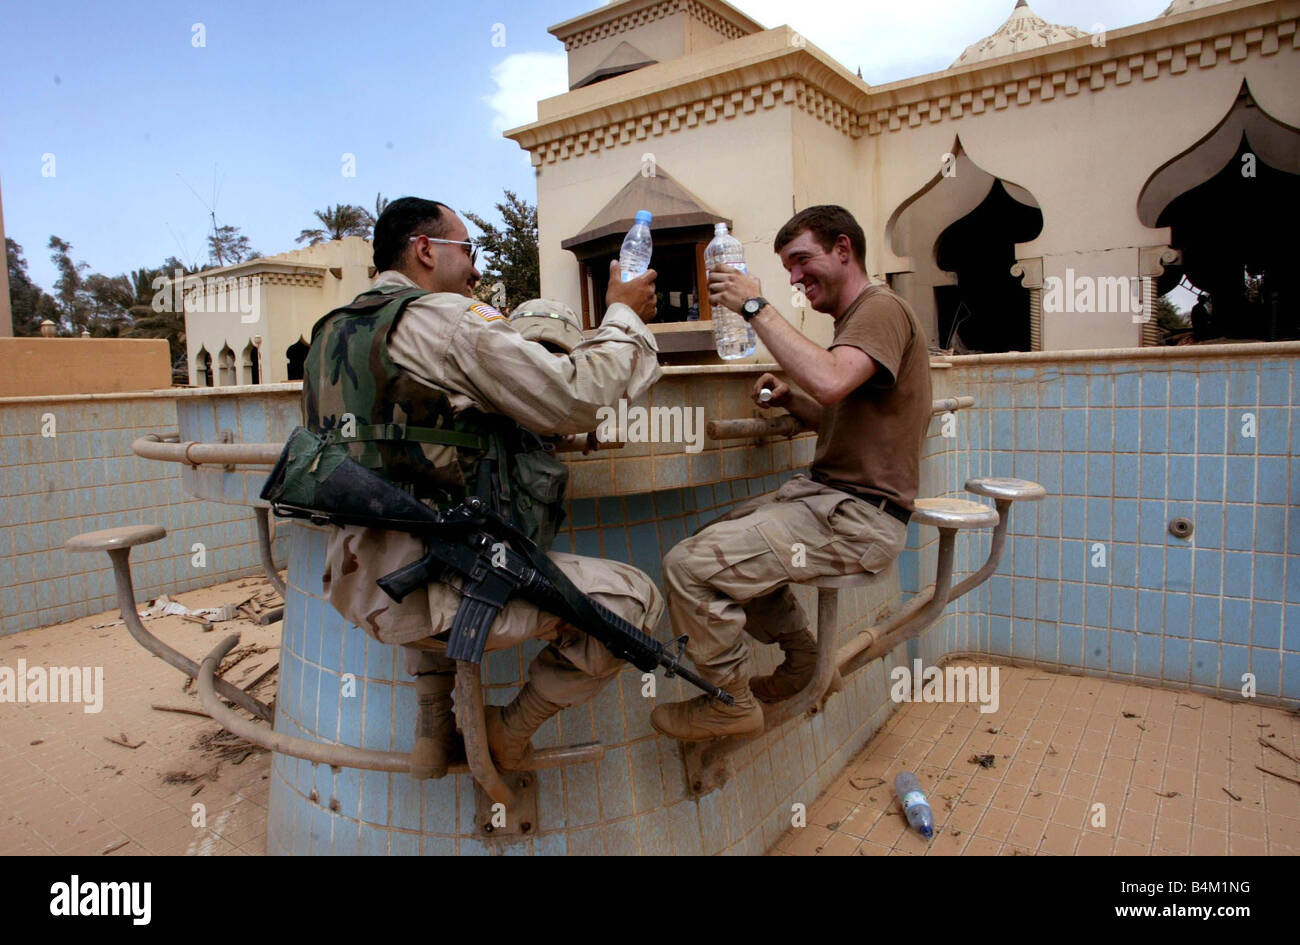 Iraq War 2003 US infantrymen try out the pool bar at Saddam s son Uday s entertaining palace discovered by elements - Stock Image